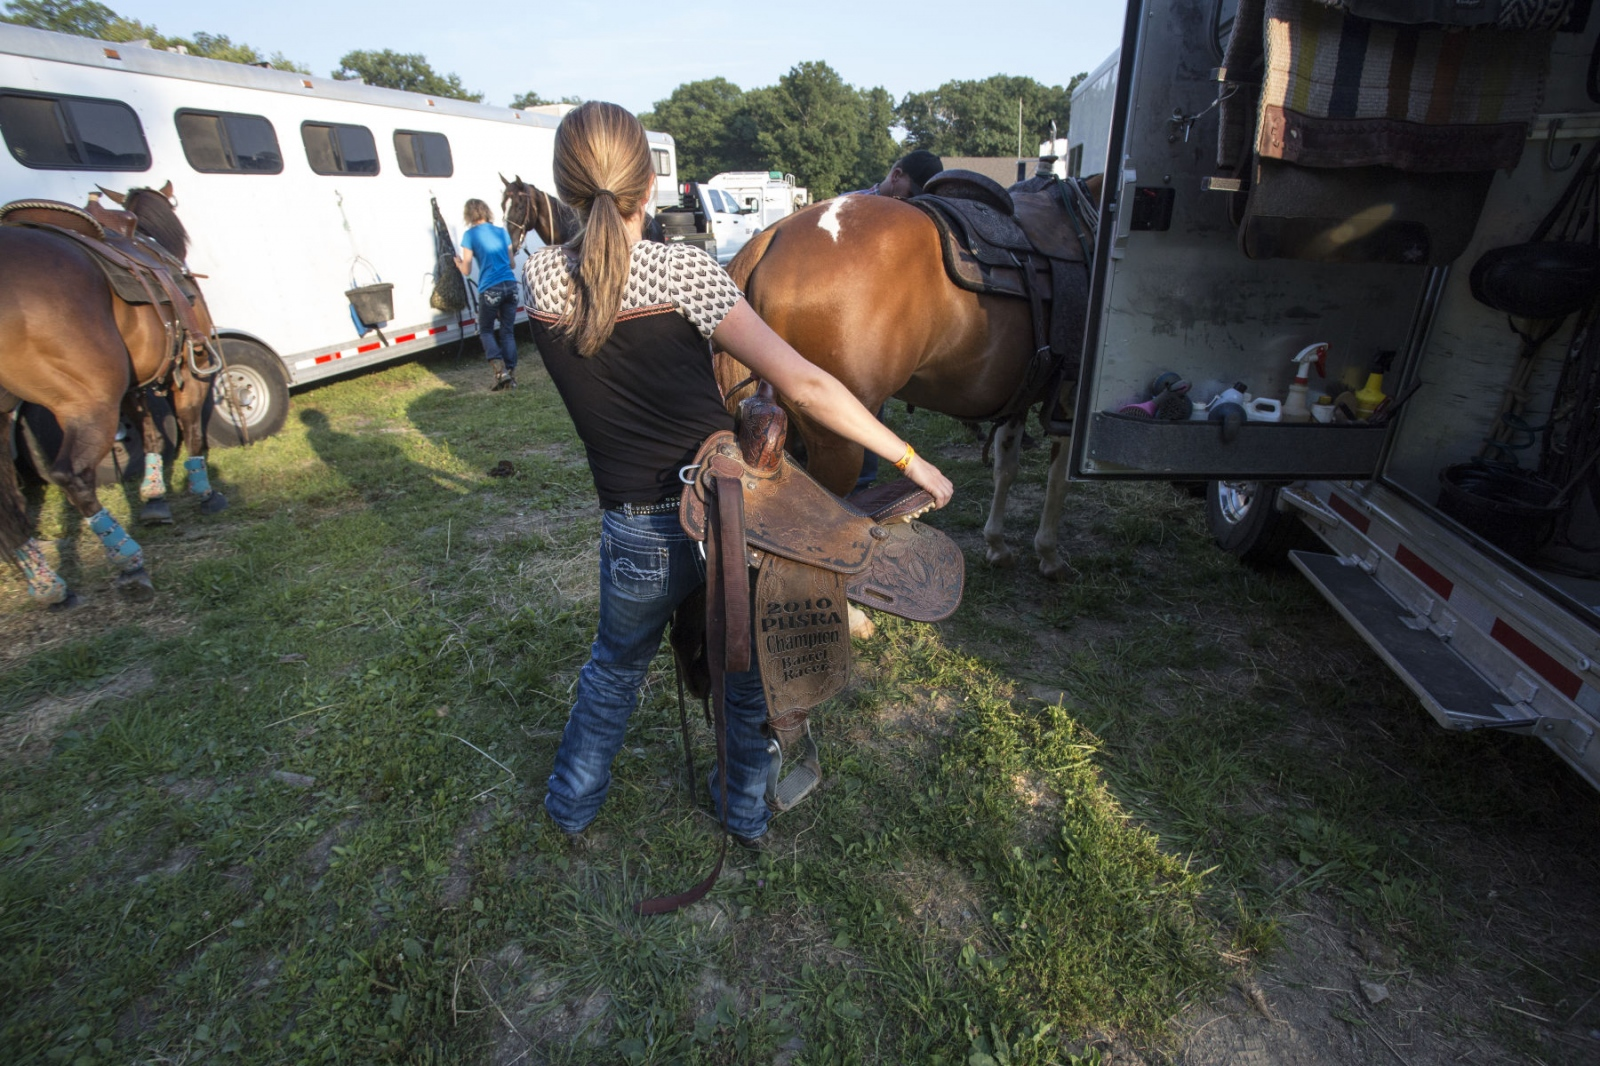 Taylor Young carrying her championship saddle to place on Tsunami before the Malibu Rodeo in Milford, Pennsylvania.(Kevin C. Downs/Agence Cosmos)